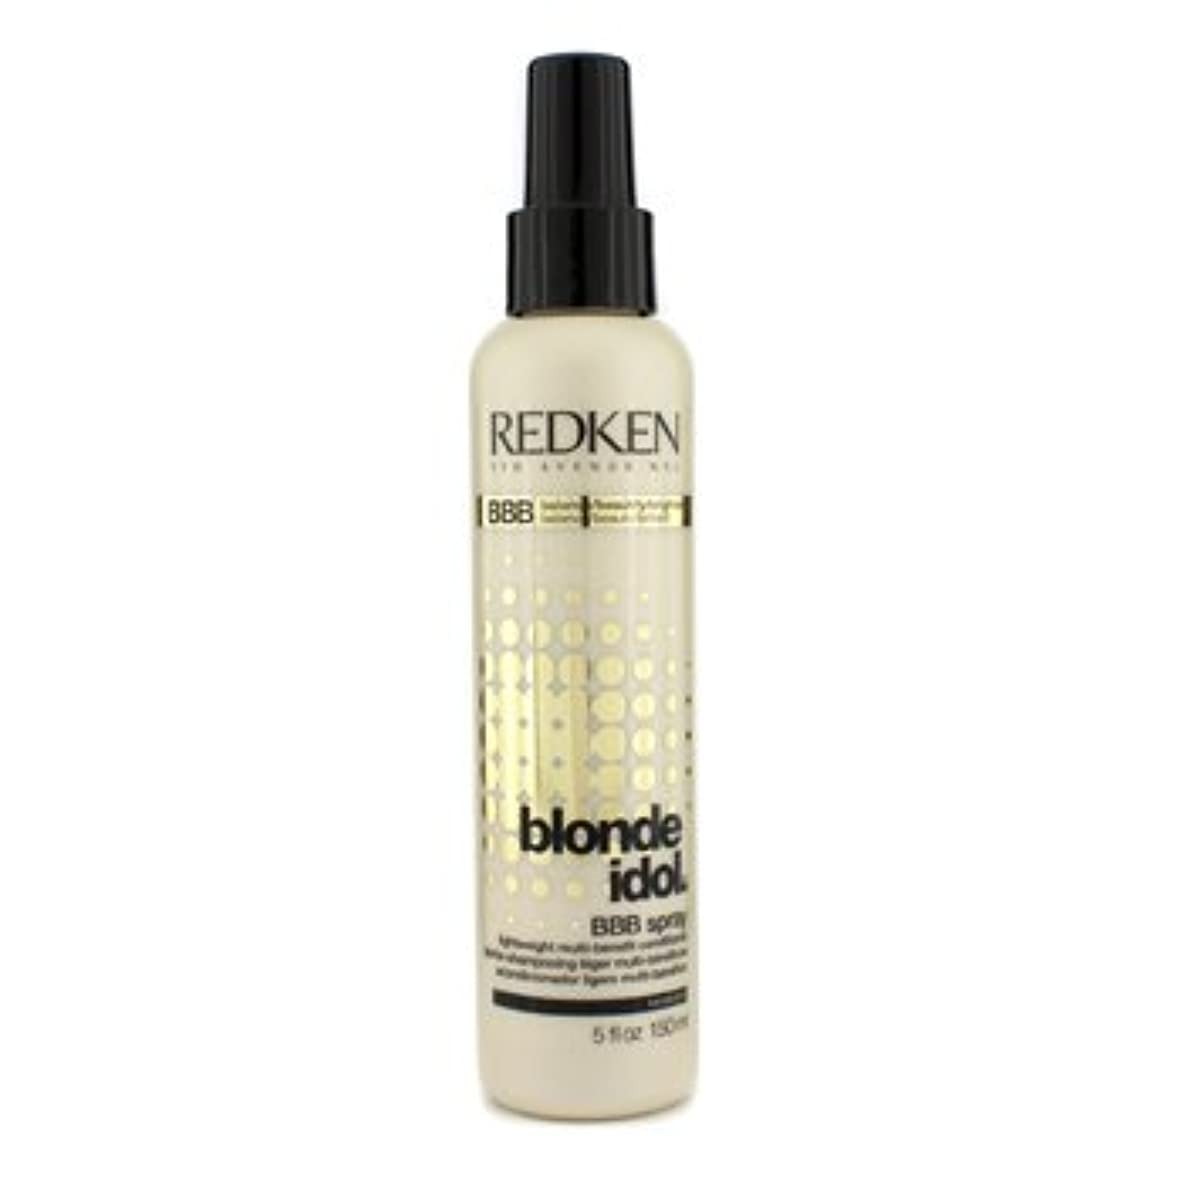 痴漢無駄に暗記する[Redken] Blonde Idol BBB Spray Lightweight Multi-Benefit Conditioner (For Beautiful Blonde Hair) 150ml/5oz